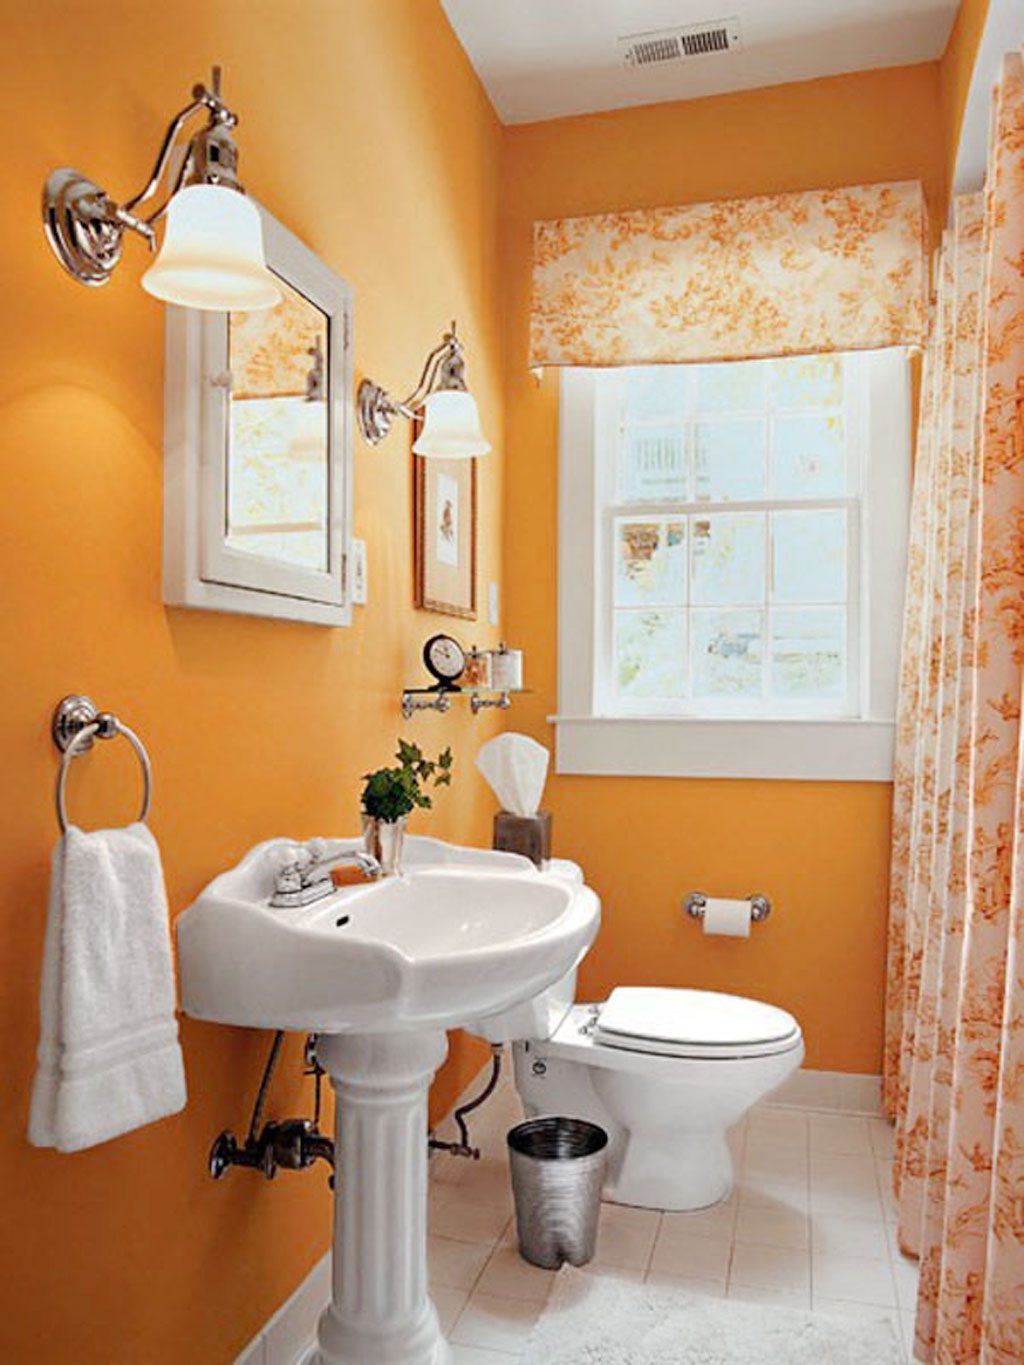 small bathroom ideas layout ewdinteriors photo gallery of the small bathroom ideas layout